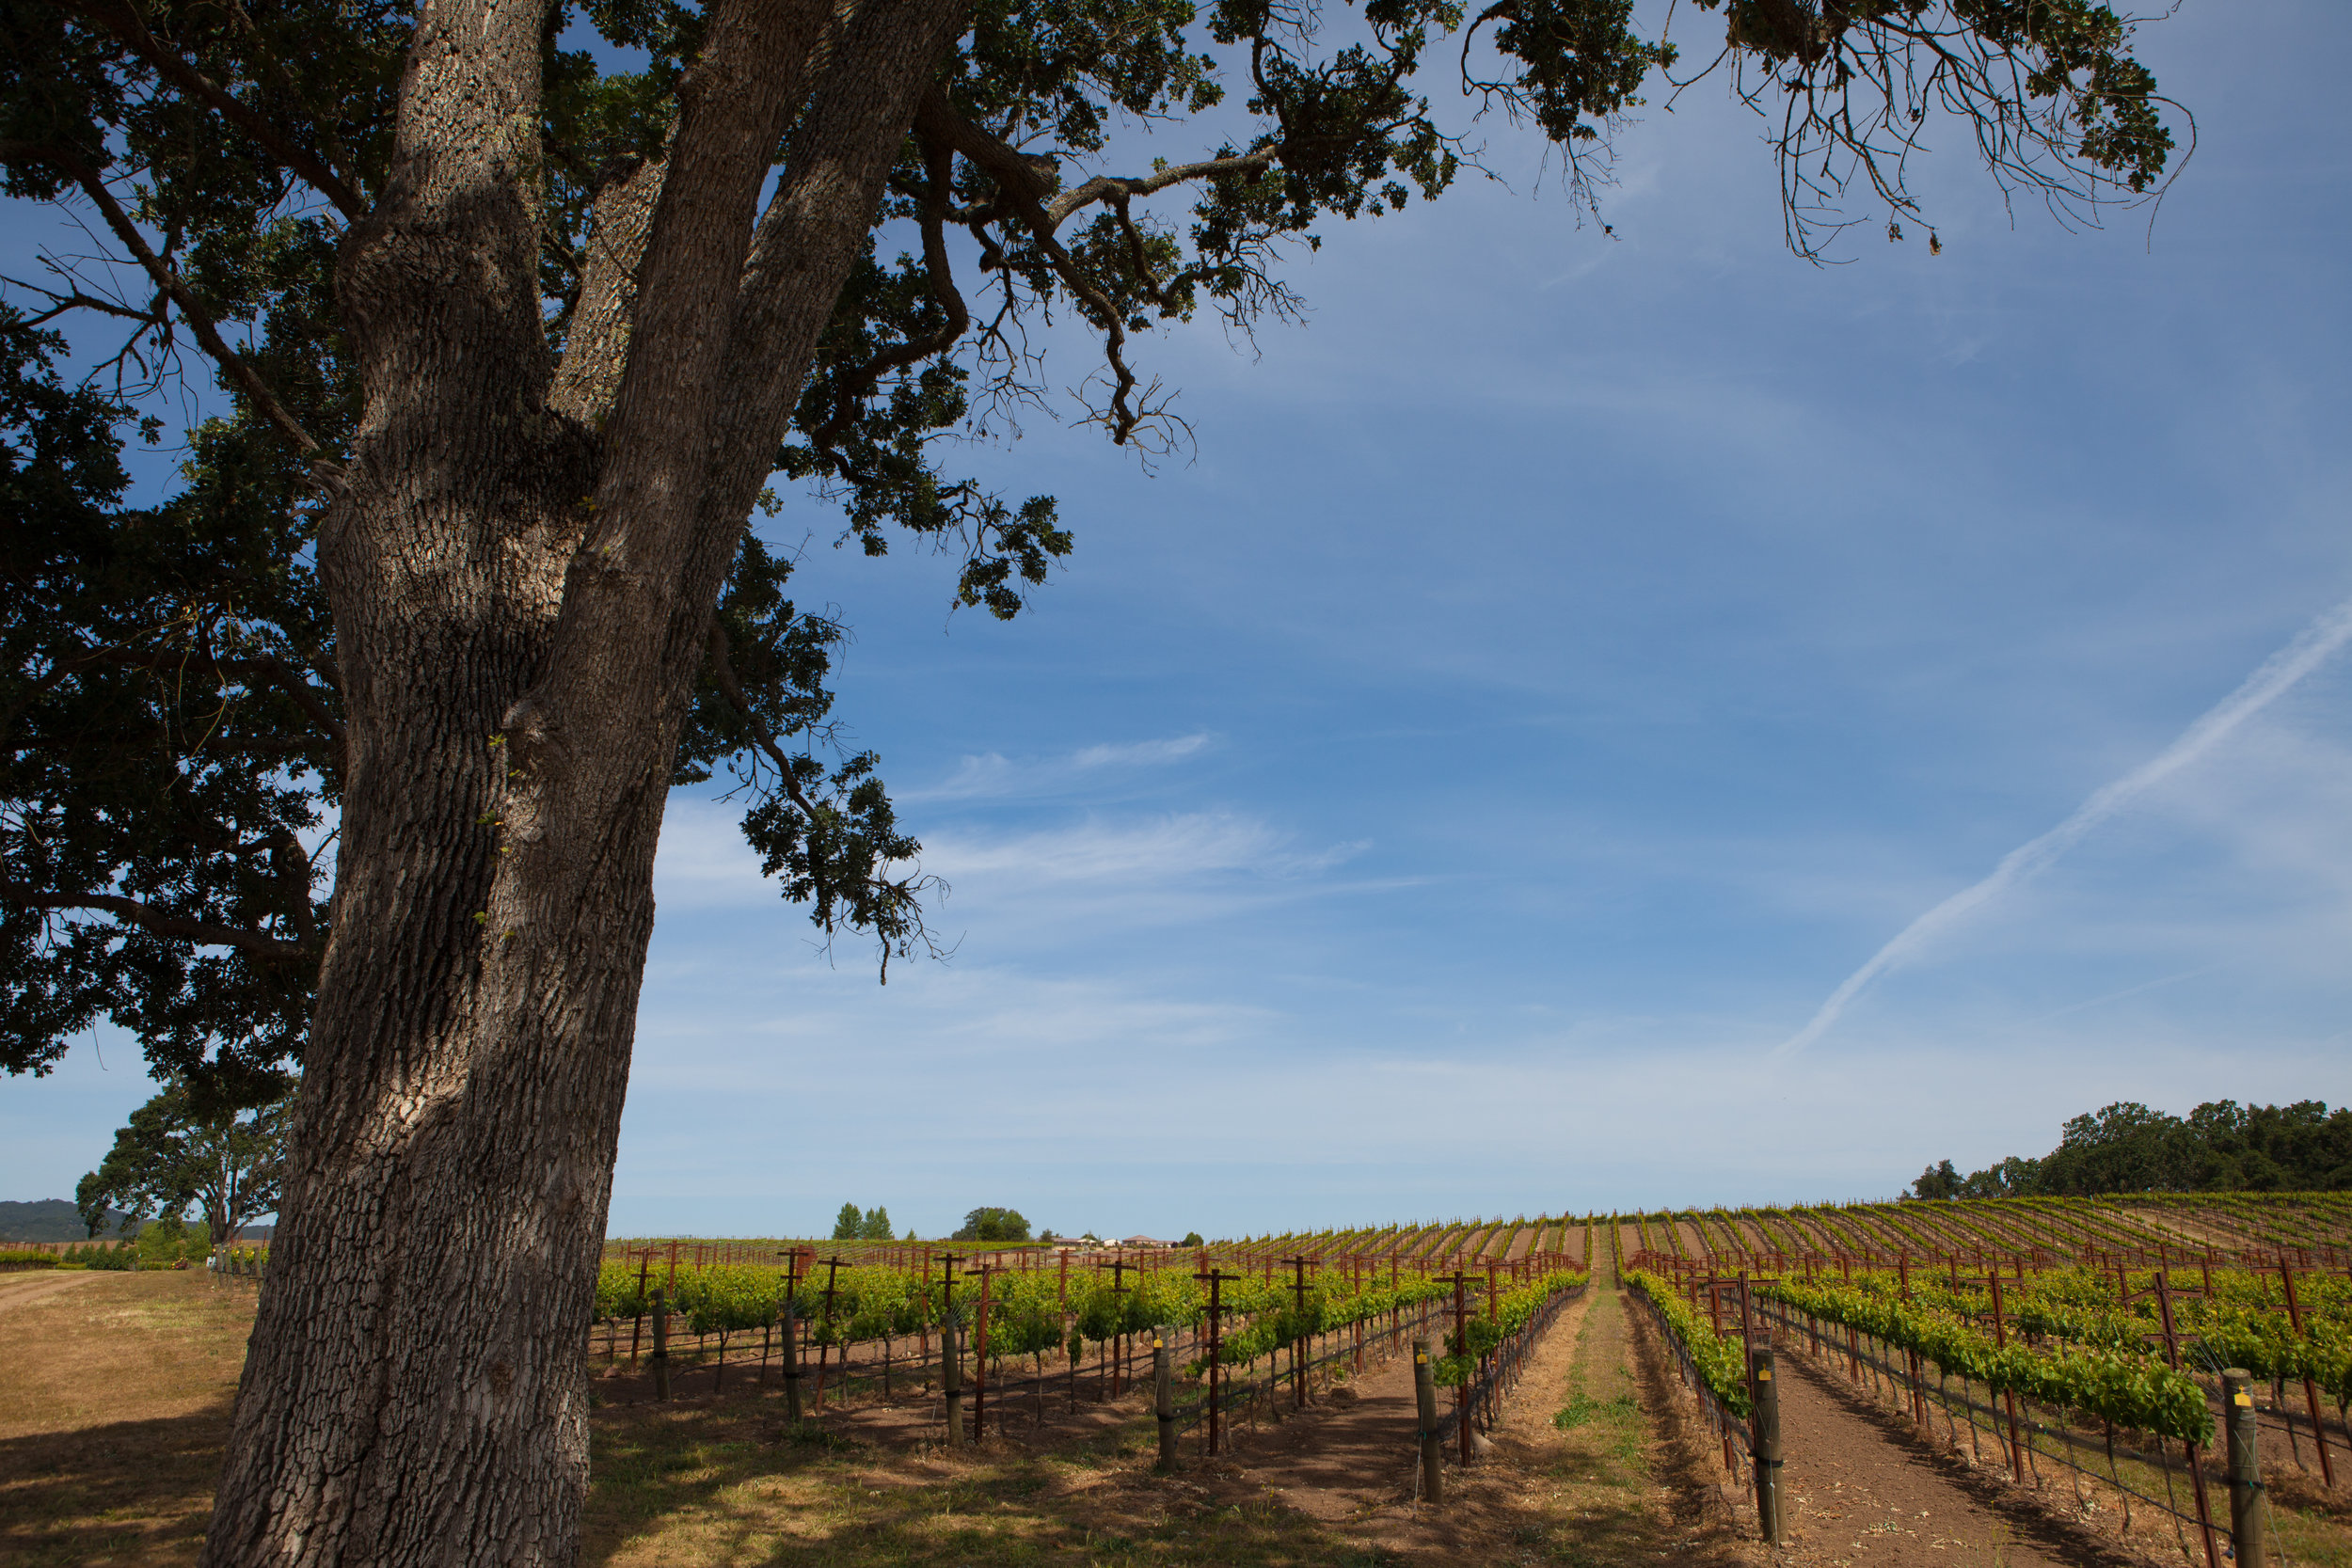 Vineyard HR-3828.jpg